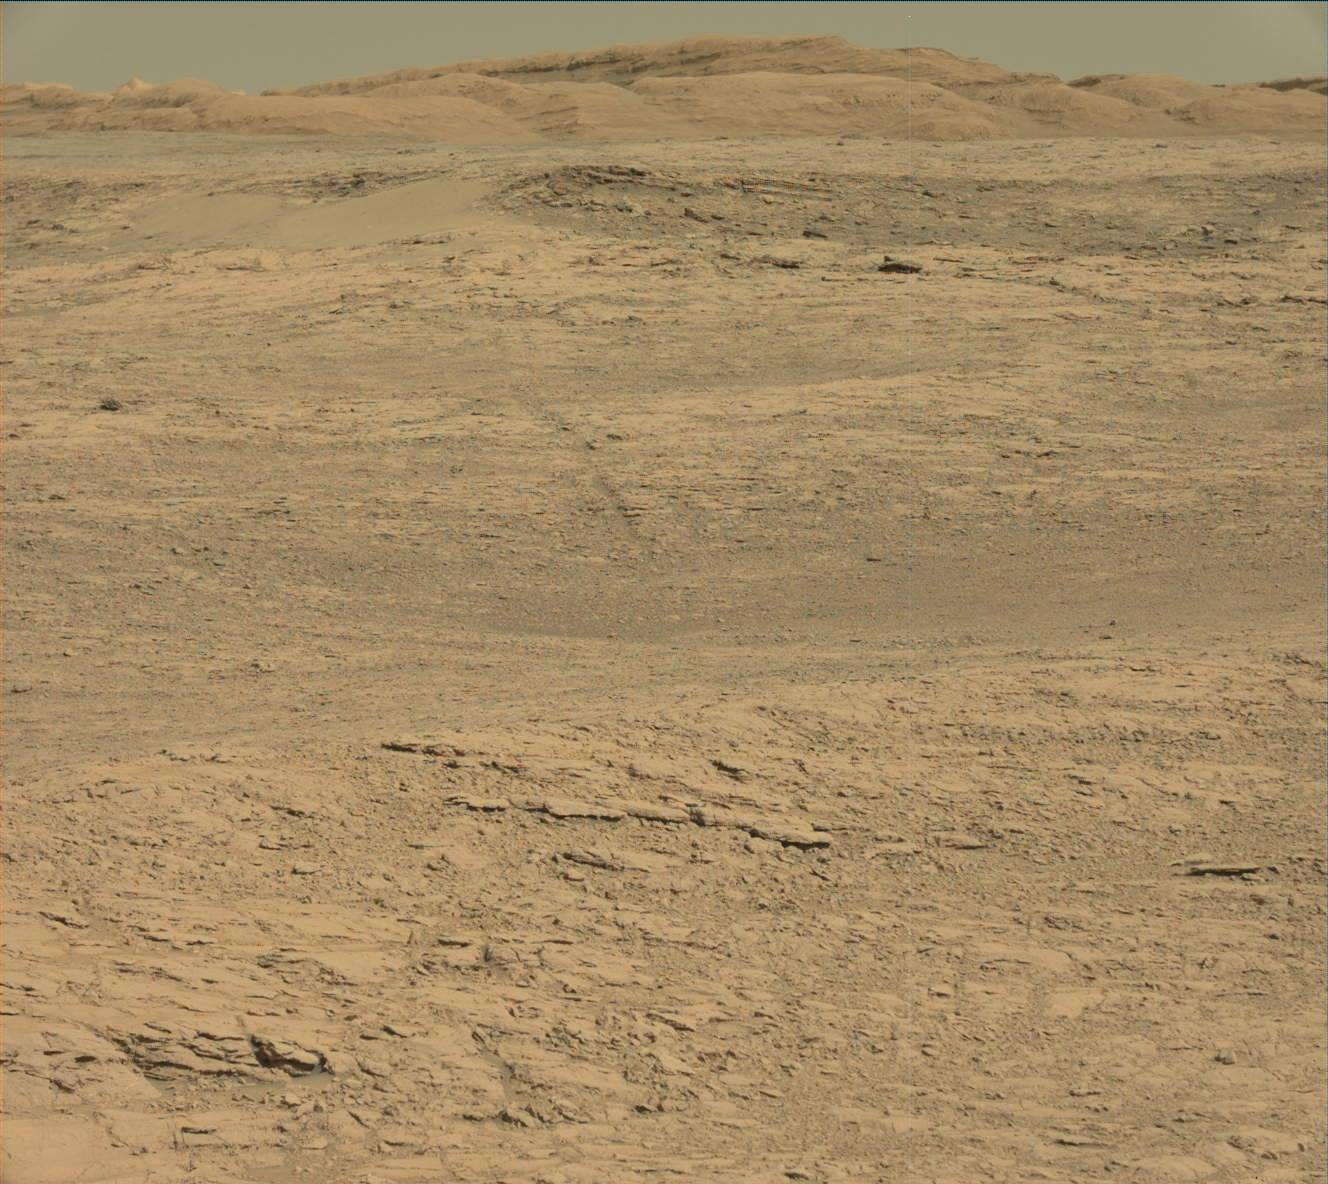 This image was taken by Mastcam: Left onboard NASA's Mars rover Curiosity on Sol 1834.